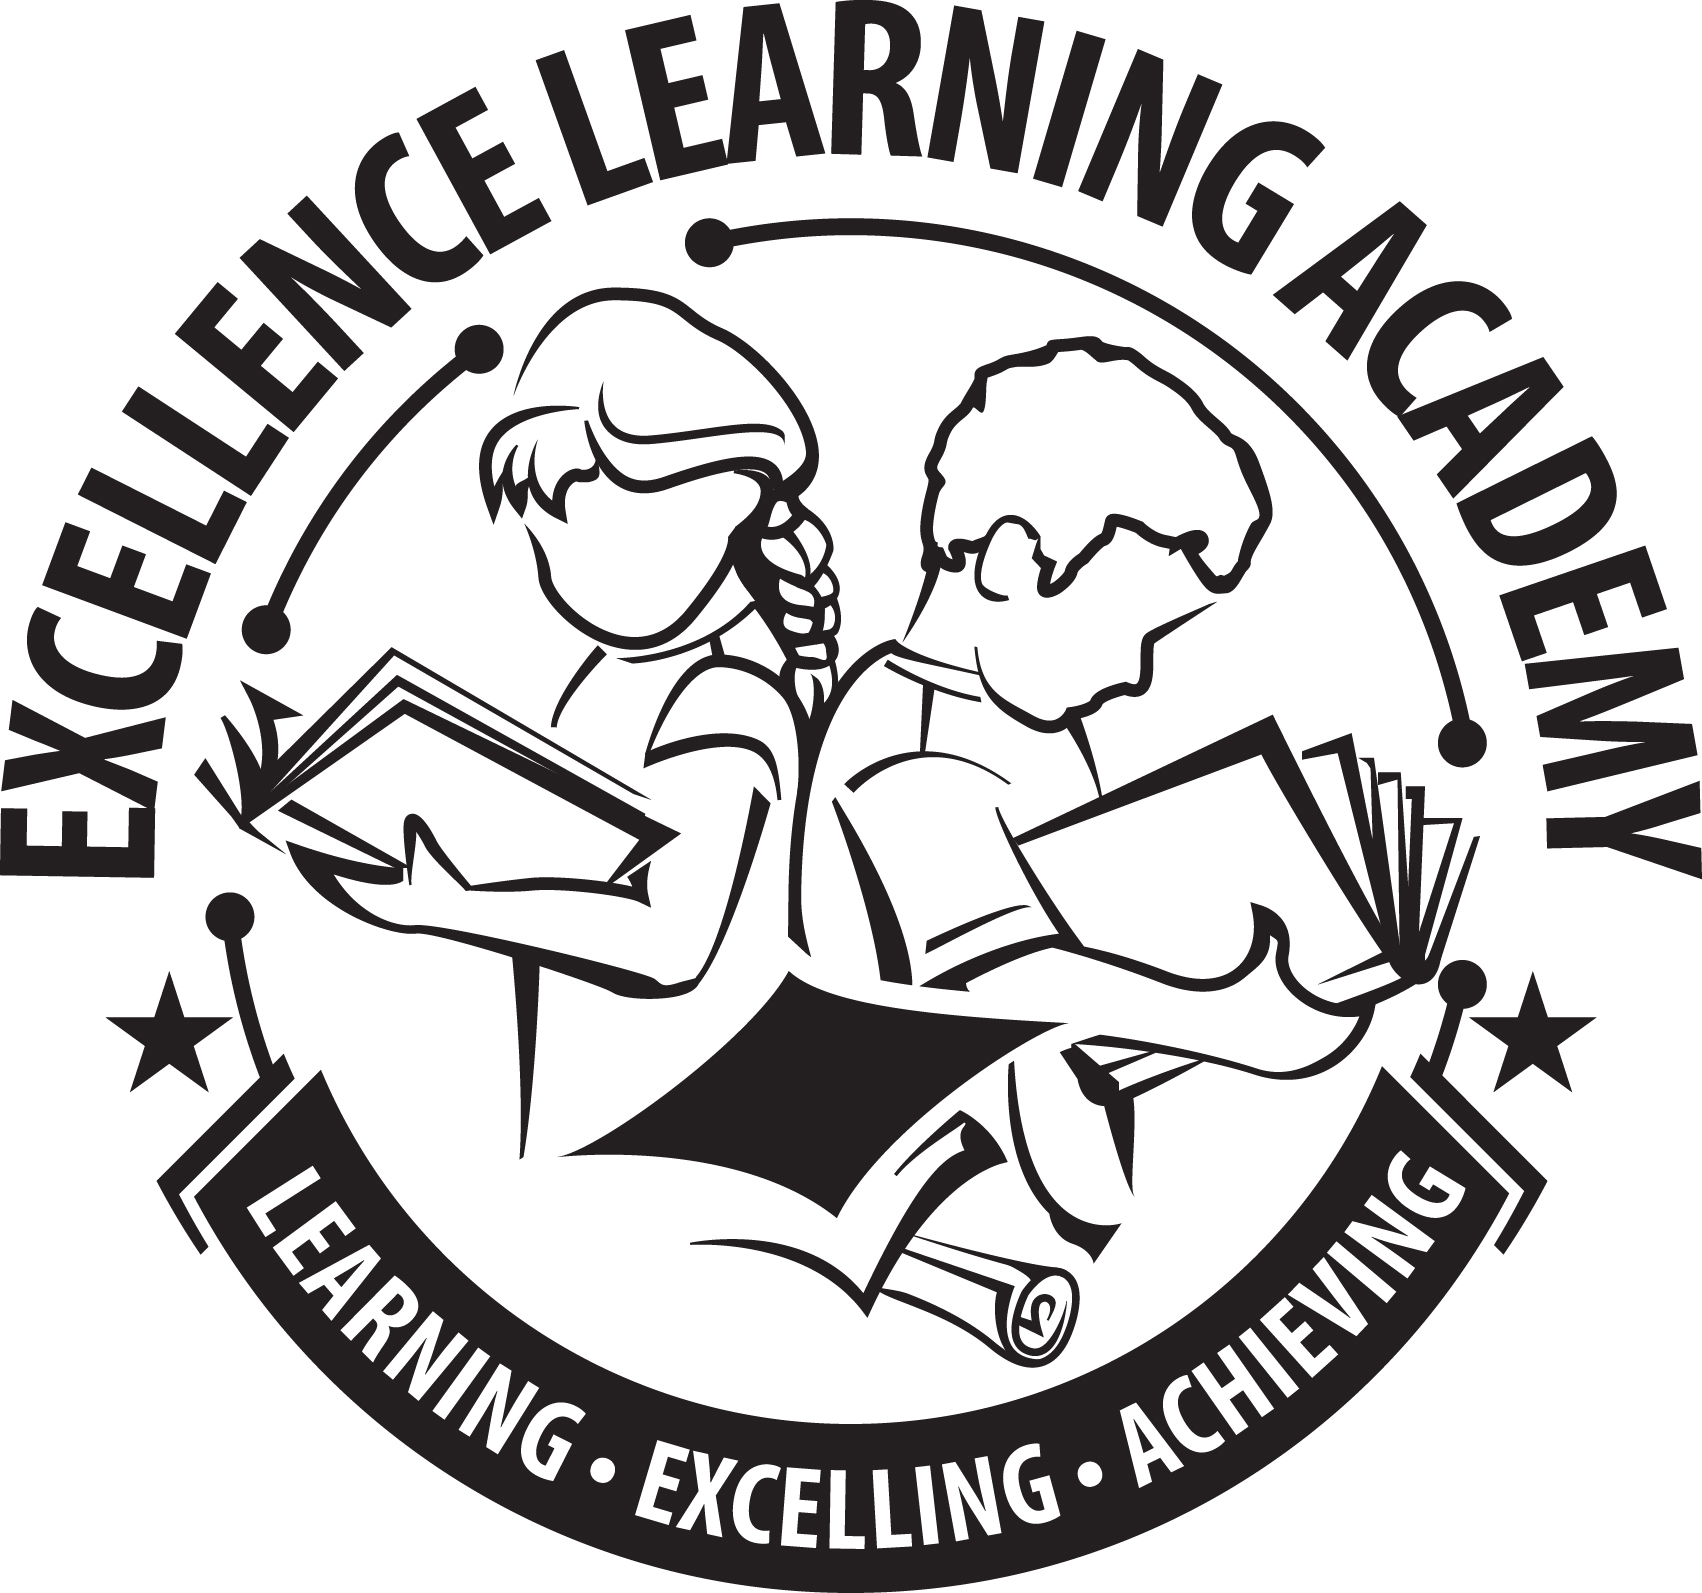 Excellence Learning Academy